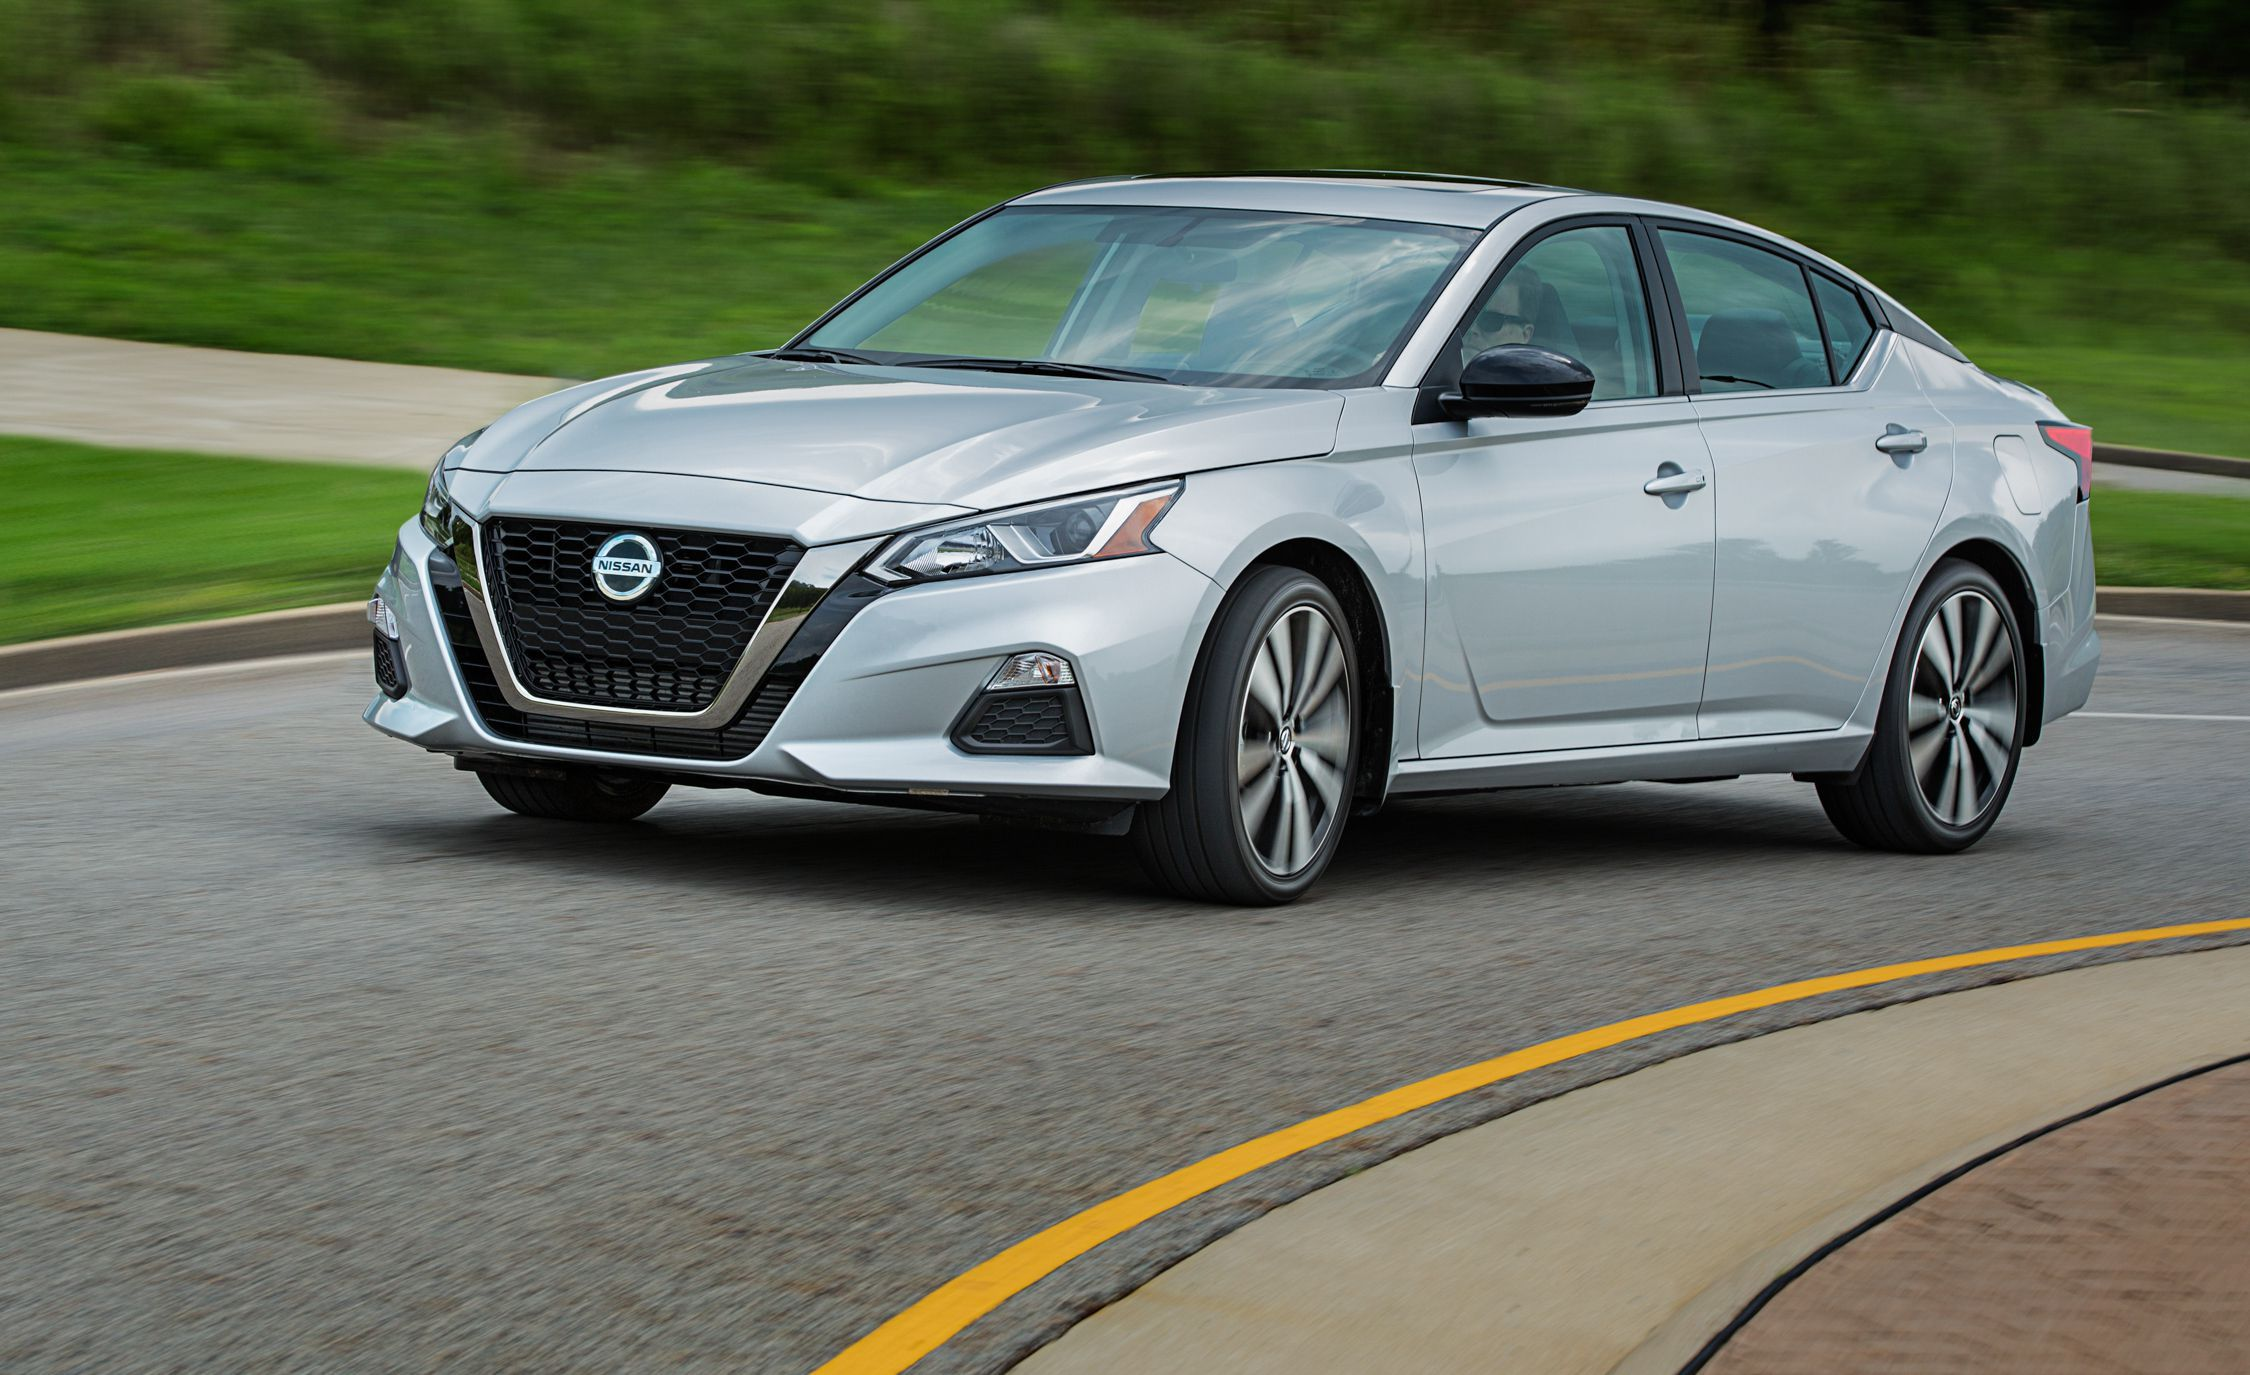 Nissan Altima Reviews Nissan Altima Price s and Specs